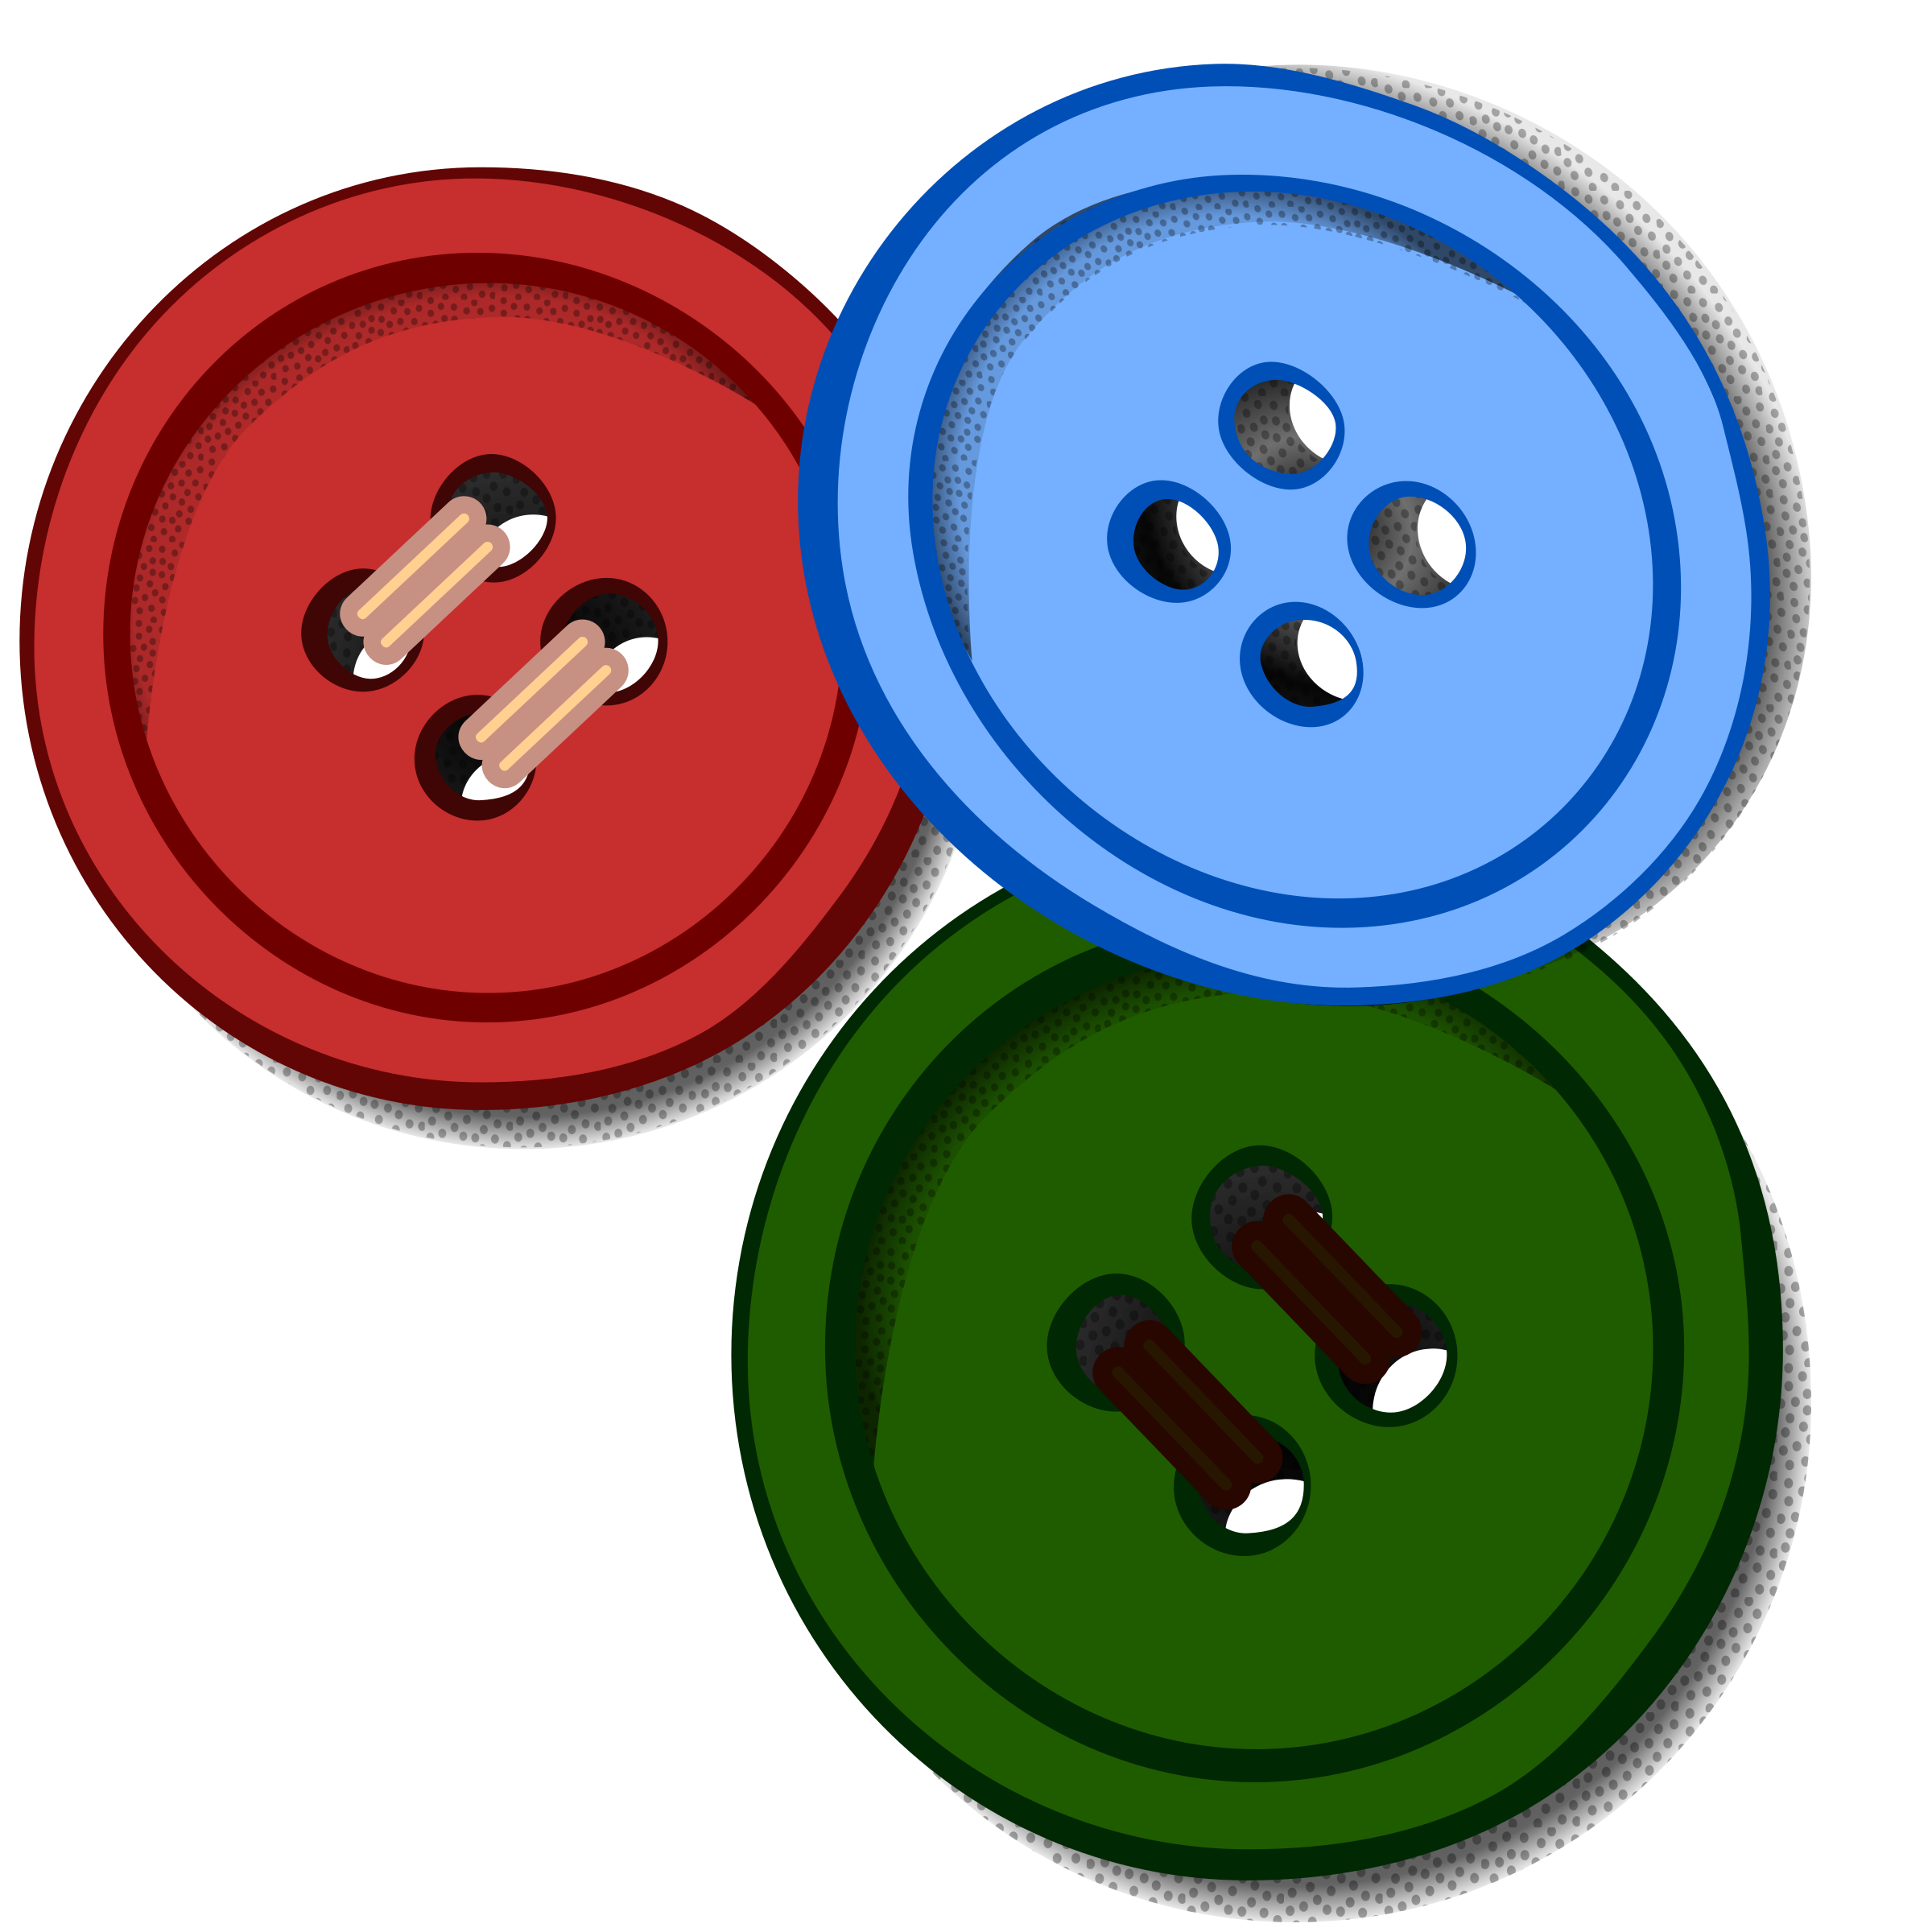 Colored Buttons vector files image - Free stock photo - Public ...